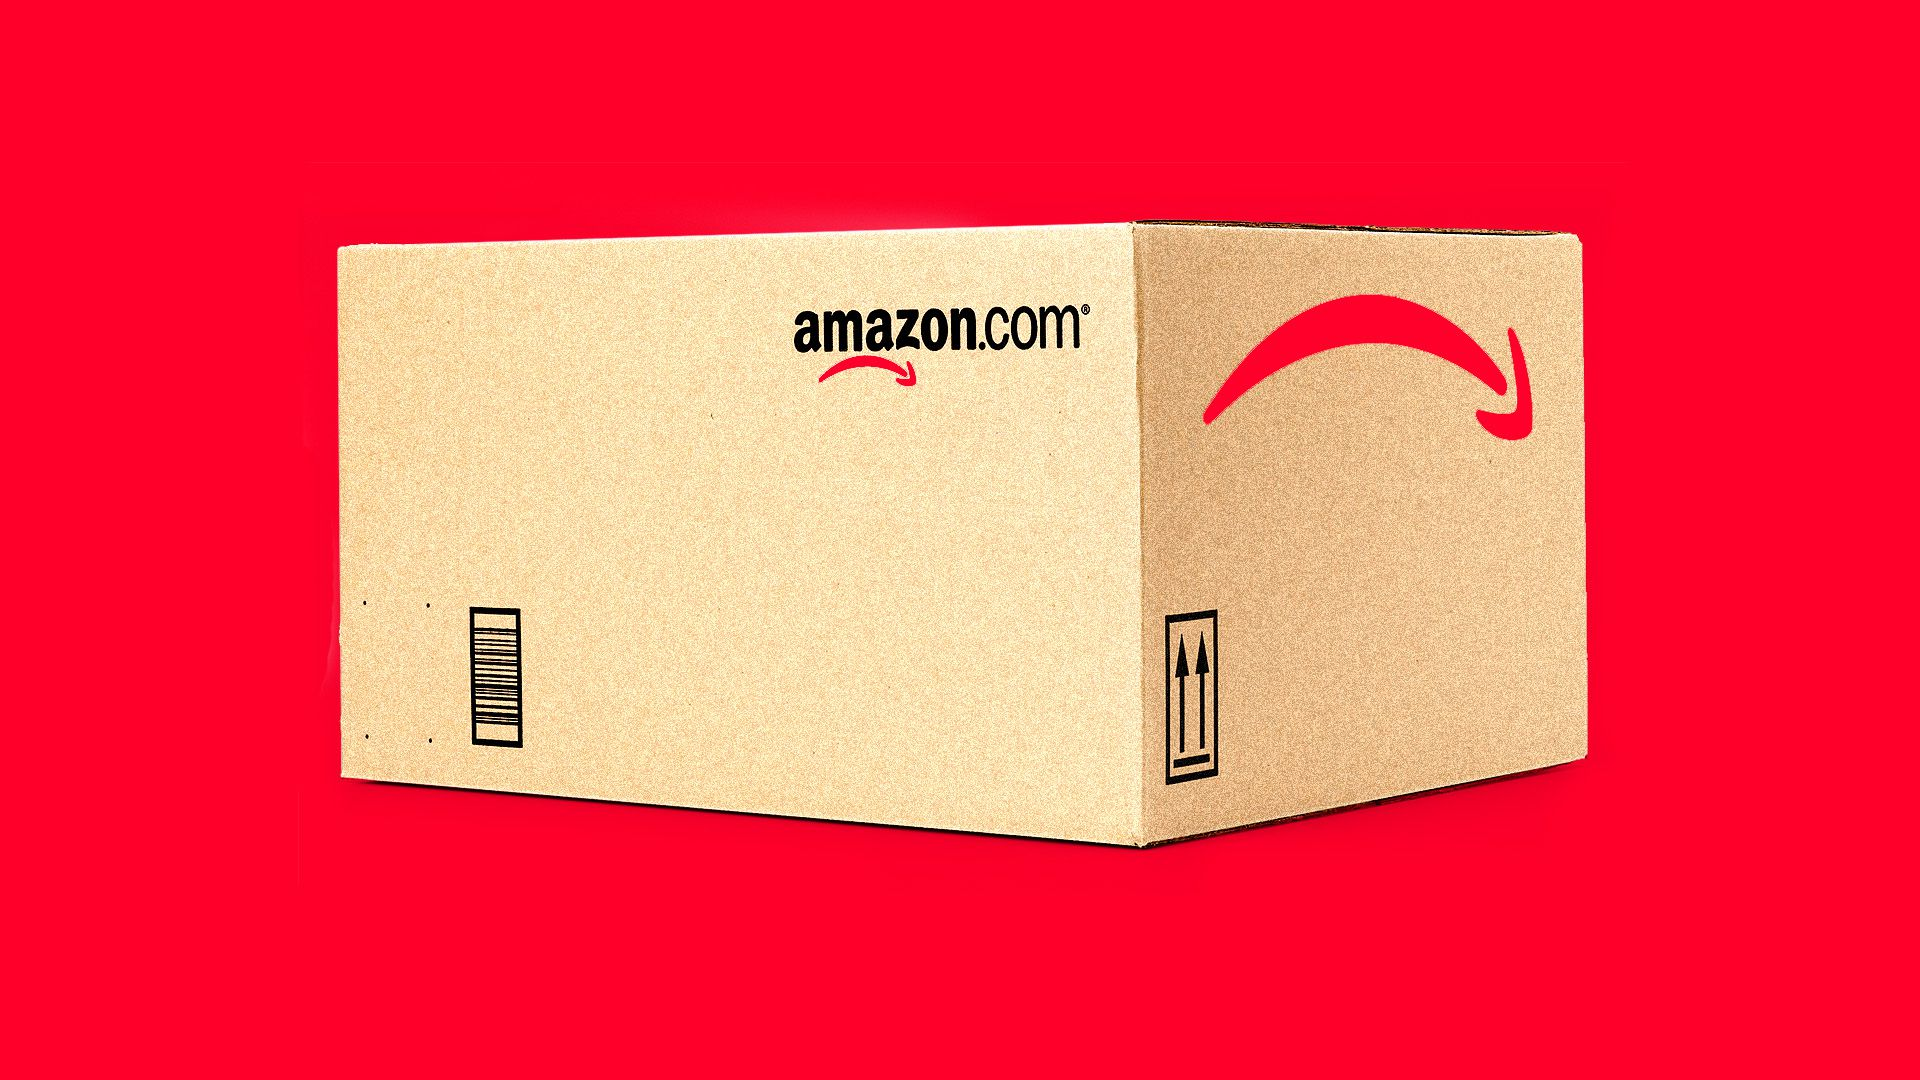 An Amazon box with a frown instead of a smile logo